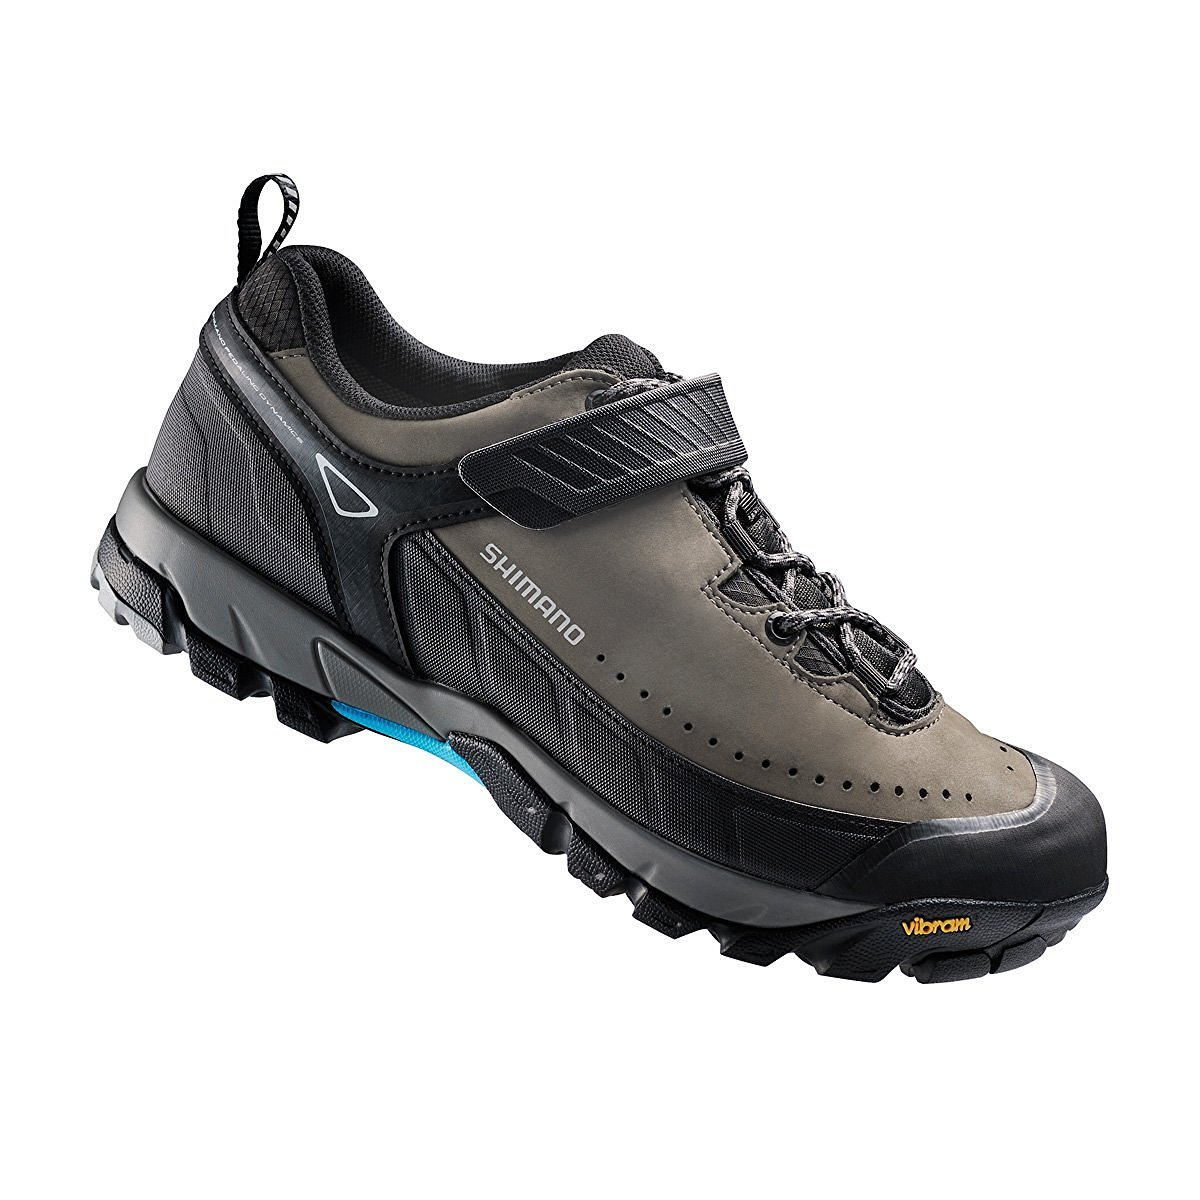 SHIMANO SH-XM7 Adventure Shoe – Men s Mountain Bike